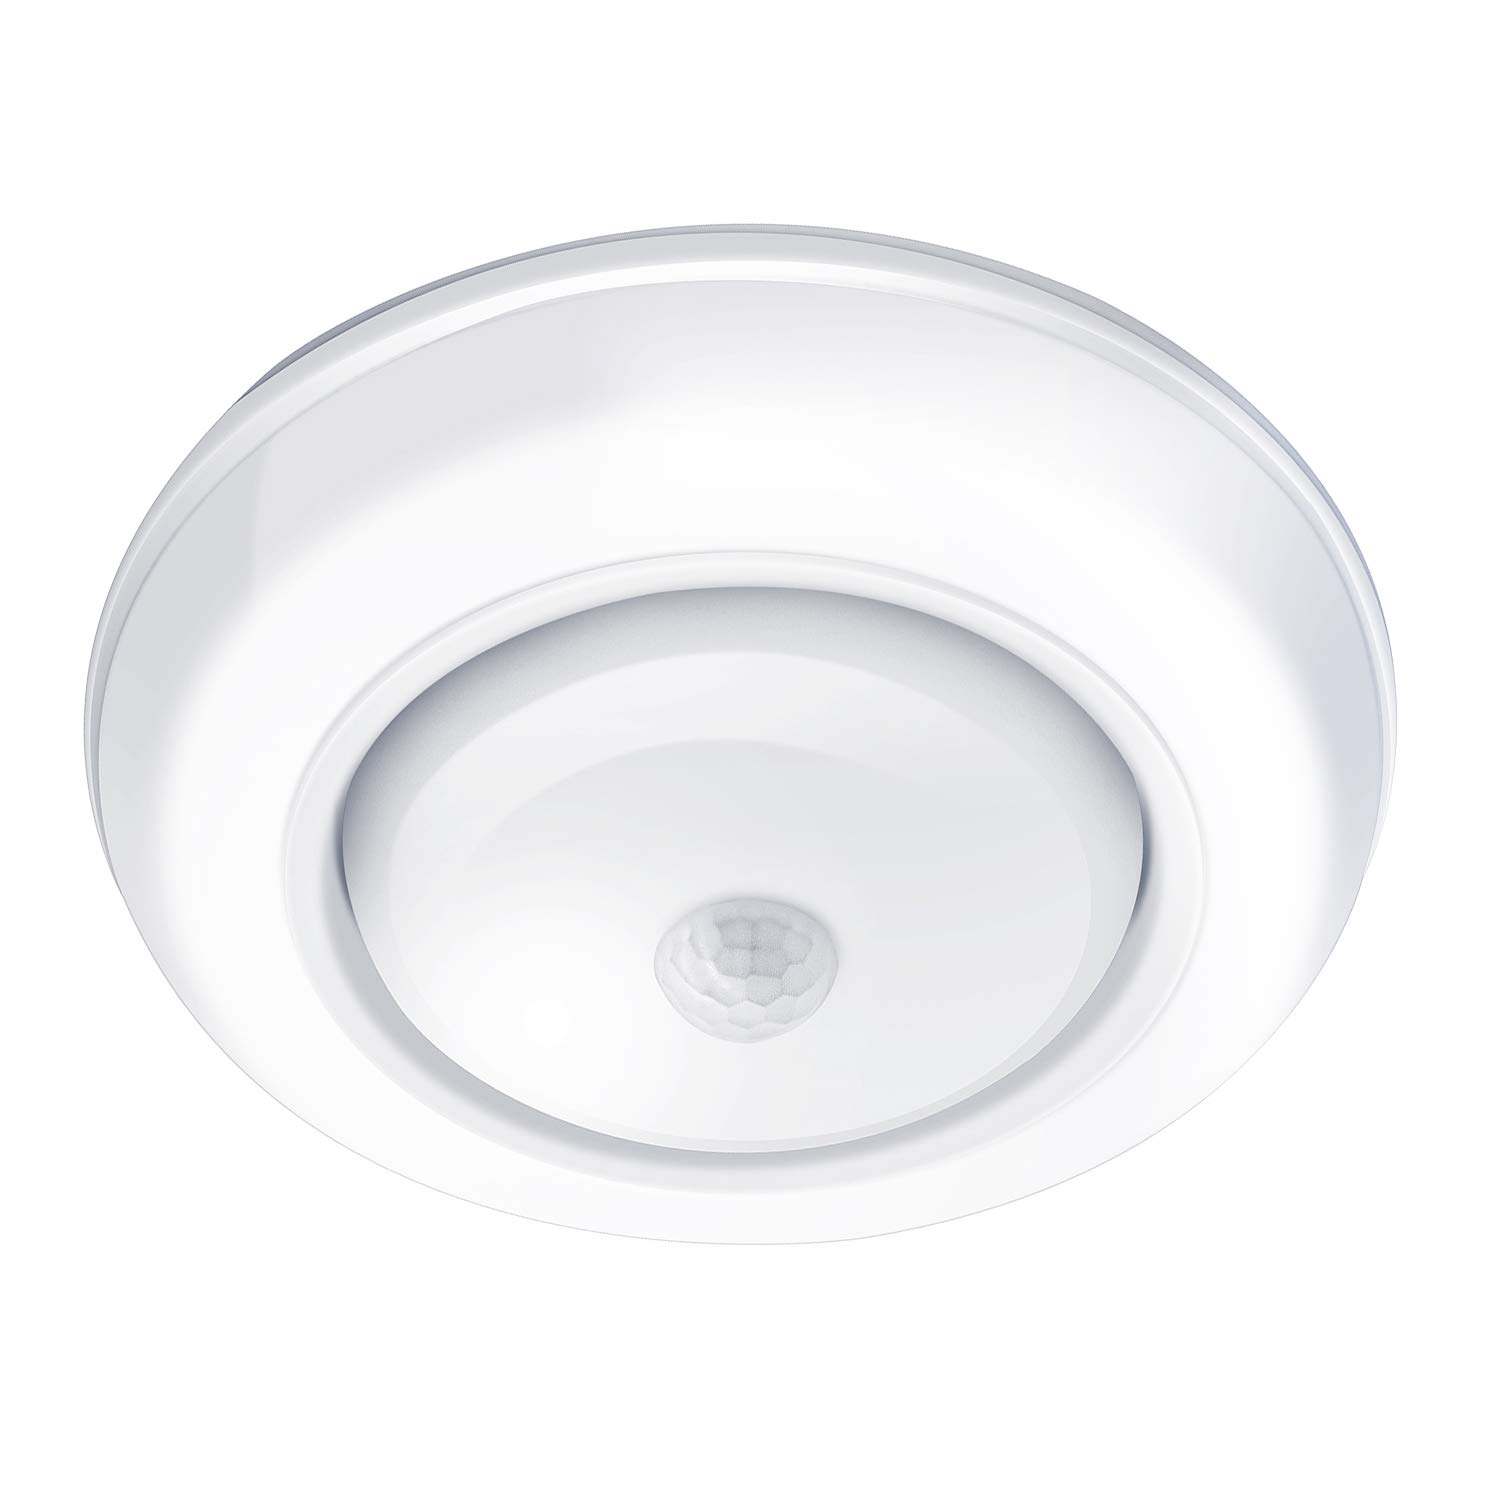 Motion Sensor Ceiling Light Battery Operated AriesTech Wireless Motion Sensing Activated LED Light White 180 Lumen Indoor for Entrance, Stairs, Hallway, Basement, Garage, Bathroom, Cabinet, Closet